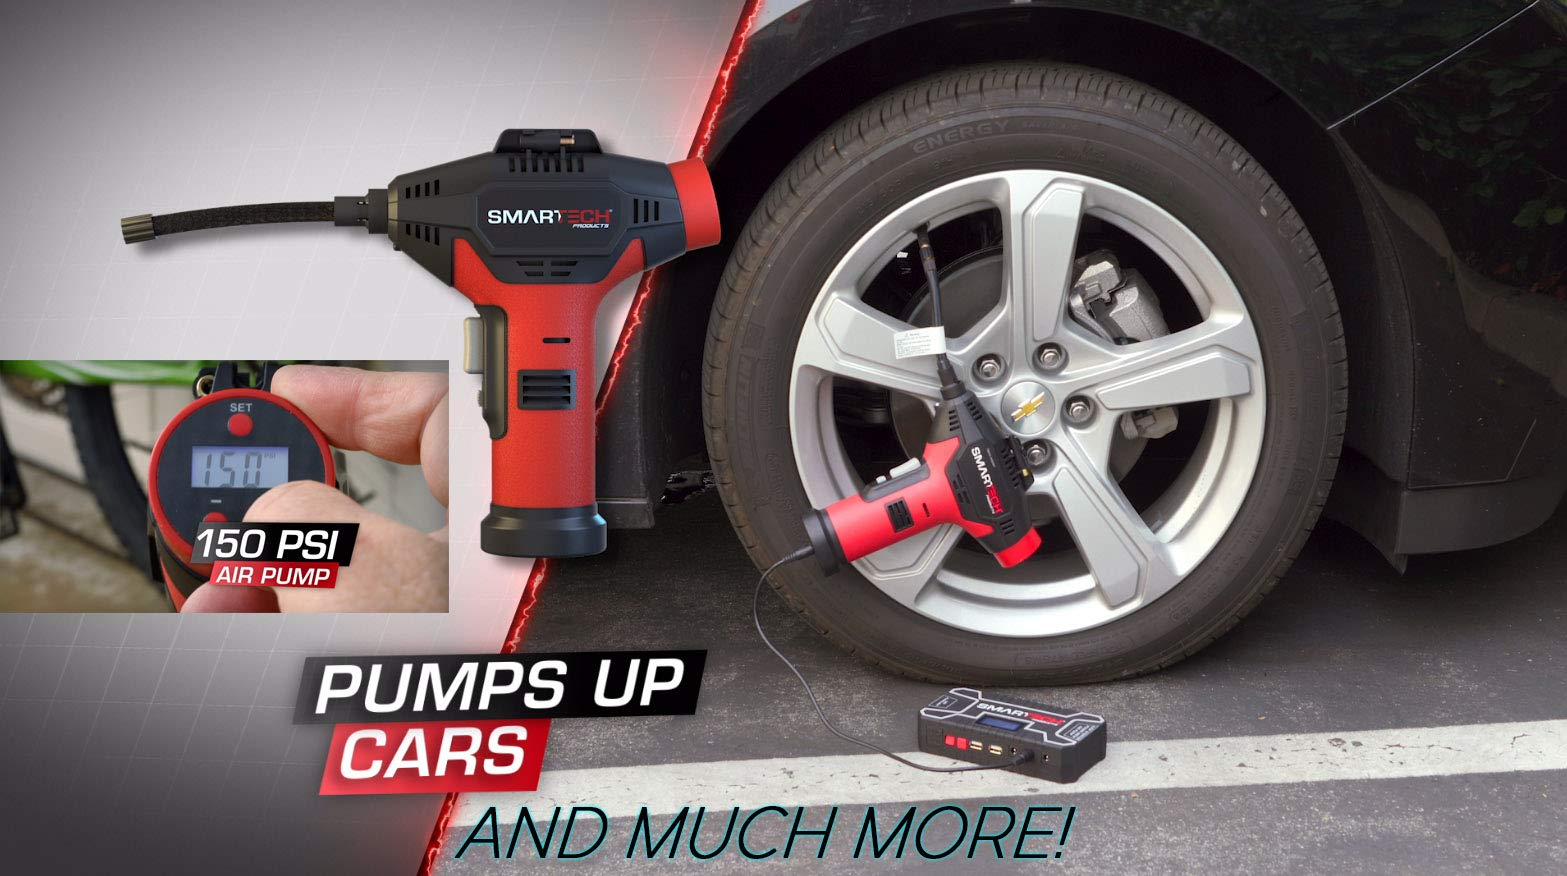 Smartech Power Kit Portable Jump Starter Power Bank Air Pump Tire inflator Air Compressor by Smartech Products (Image #6)